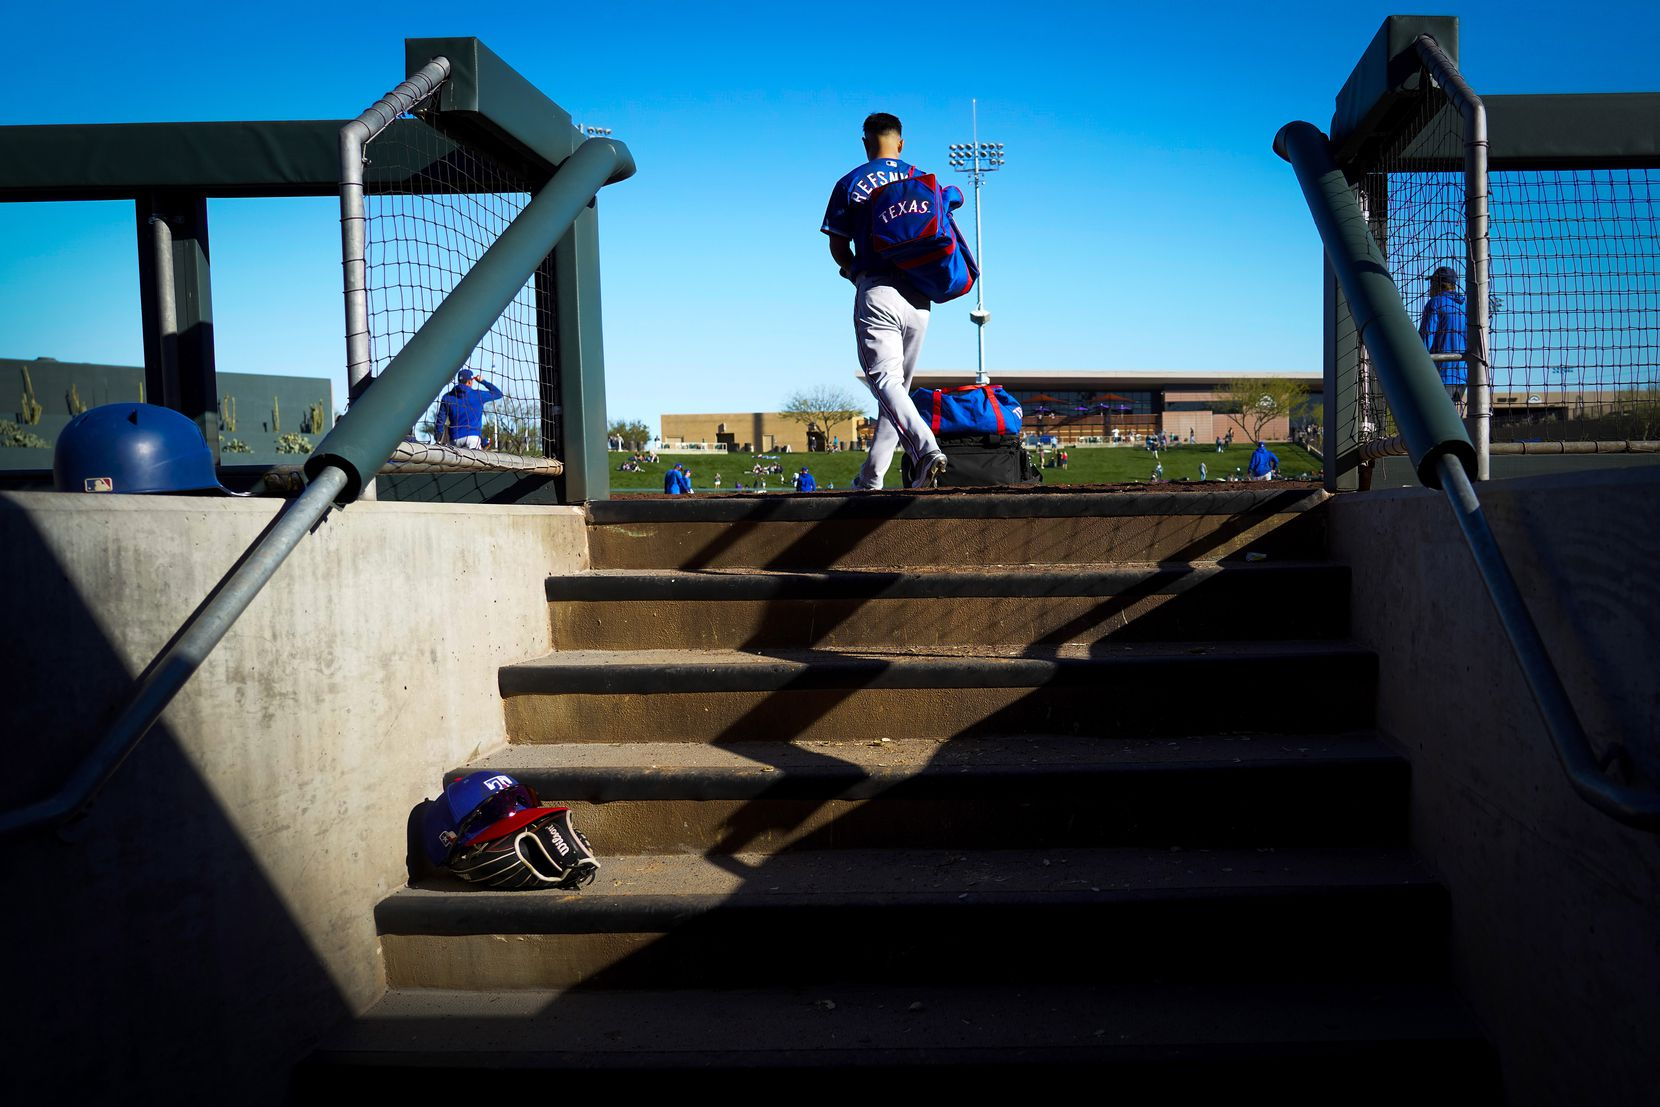 Texas Rangers outfielder Rob Refsnyder heads to the team bus after a 4-3 loss to the Colorado Rockies in a spring training game at Salt River Fields at Talking Stick on Wednesday, Feb. 26, 2020, in Scottsdale, Ariz.